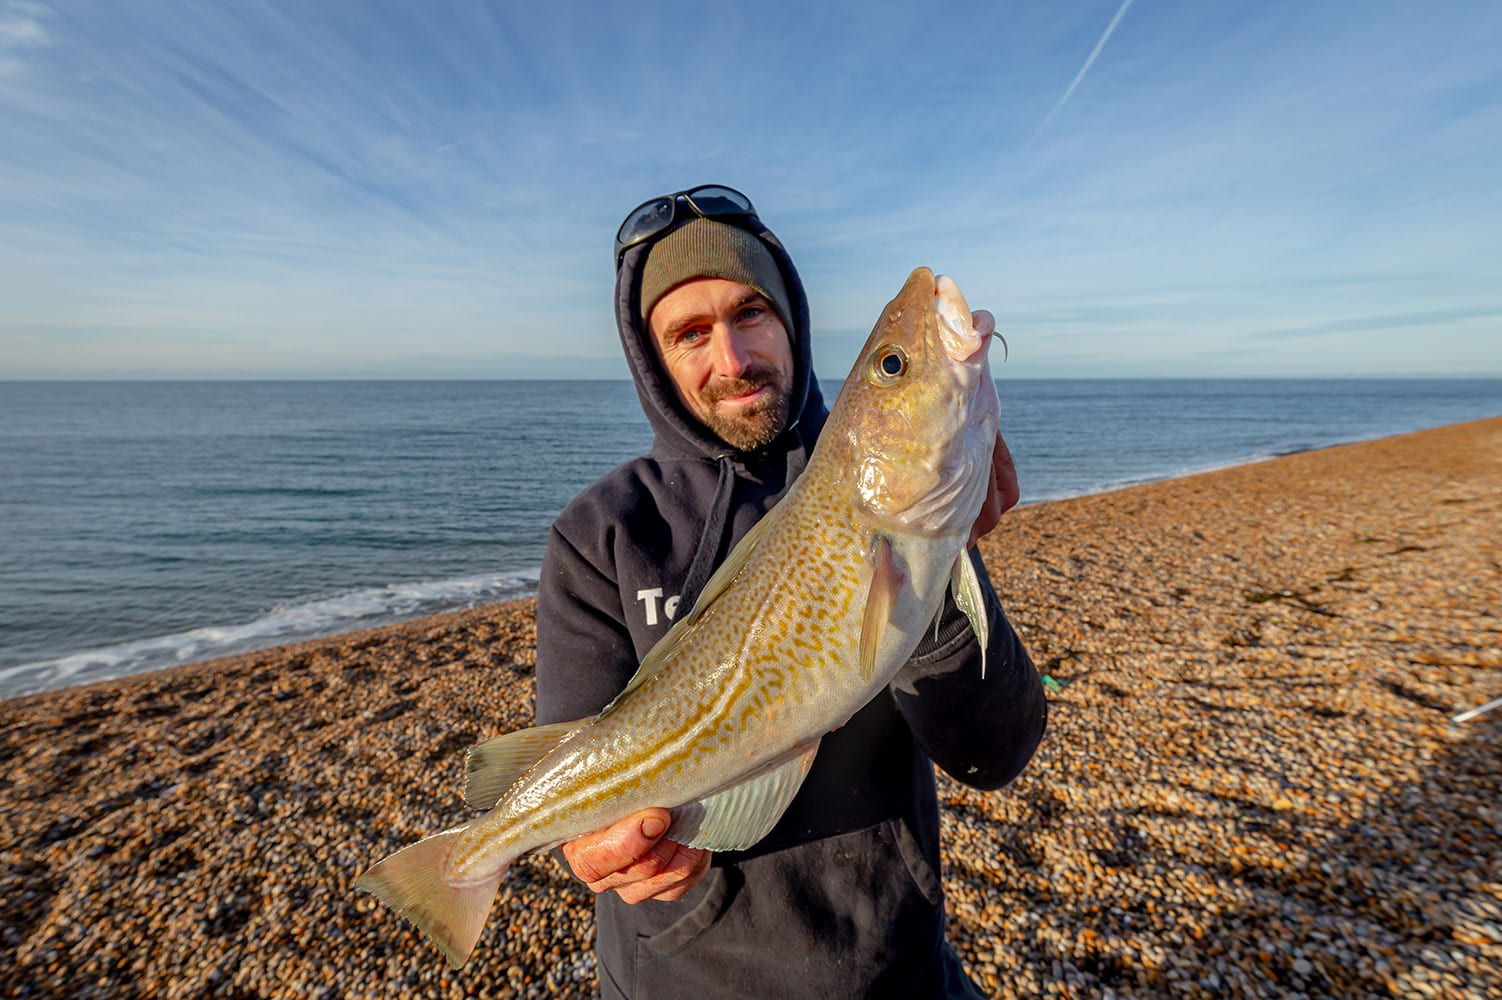 The best of the brace of chesil cod for Rob Stammas